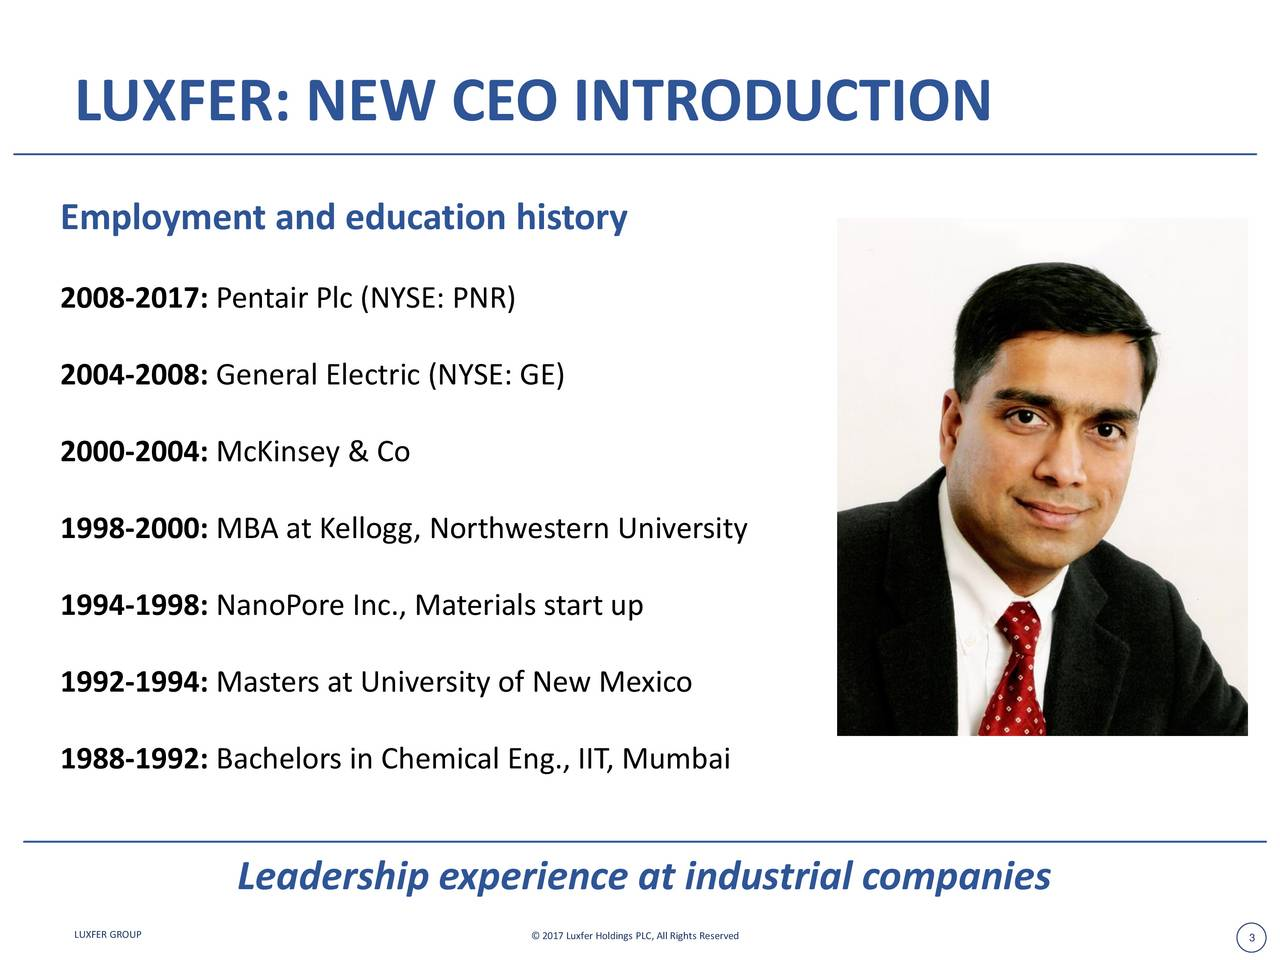 Employment and education history 2008-2017: Pentair Plc (NYSE: PNR) 2004-2008: General Electric (NYSE: GE) 2000-2004: McKinsey & Co 1998-2000: MBA at Kellogg, Northwestern University 1994-1998: NanoPore Inc., Materials start up 1992-1994: Masters at University of New Mexico 1988-1992: Bachelors in Chemical Eng., IIT, Mumbai Leadership experience at industrial companies LUXFER GROUP  2017 Luxfer Holdings PLC, All Rights Reserved 3